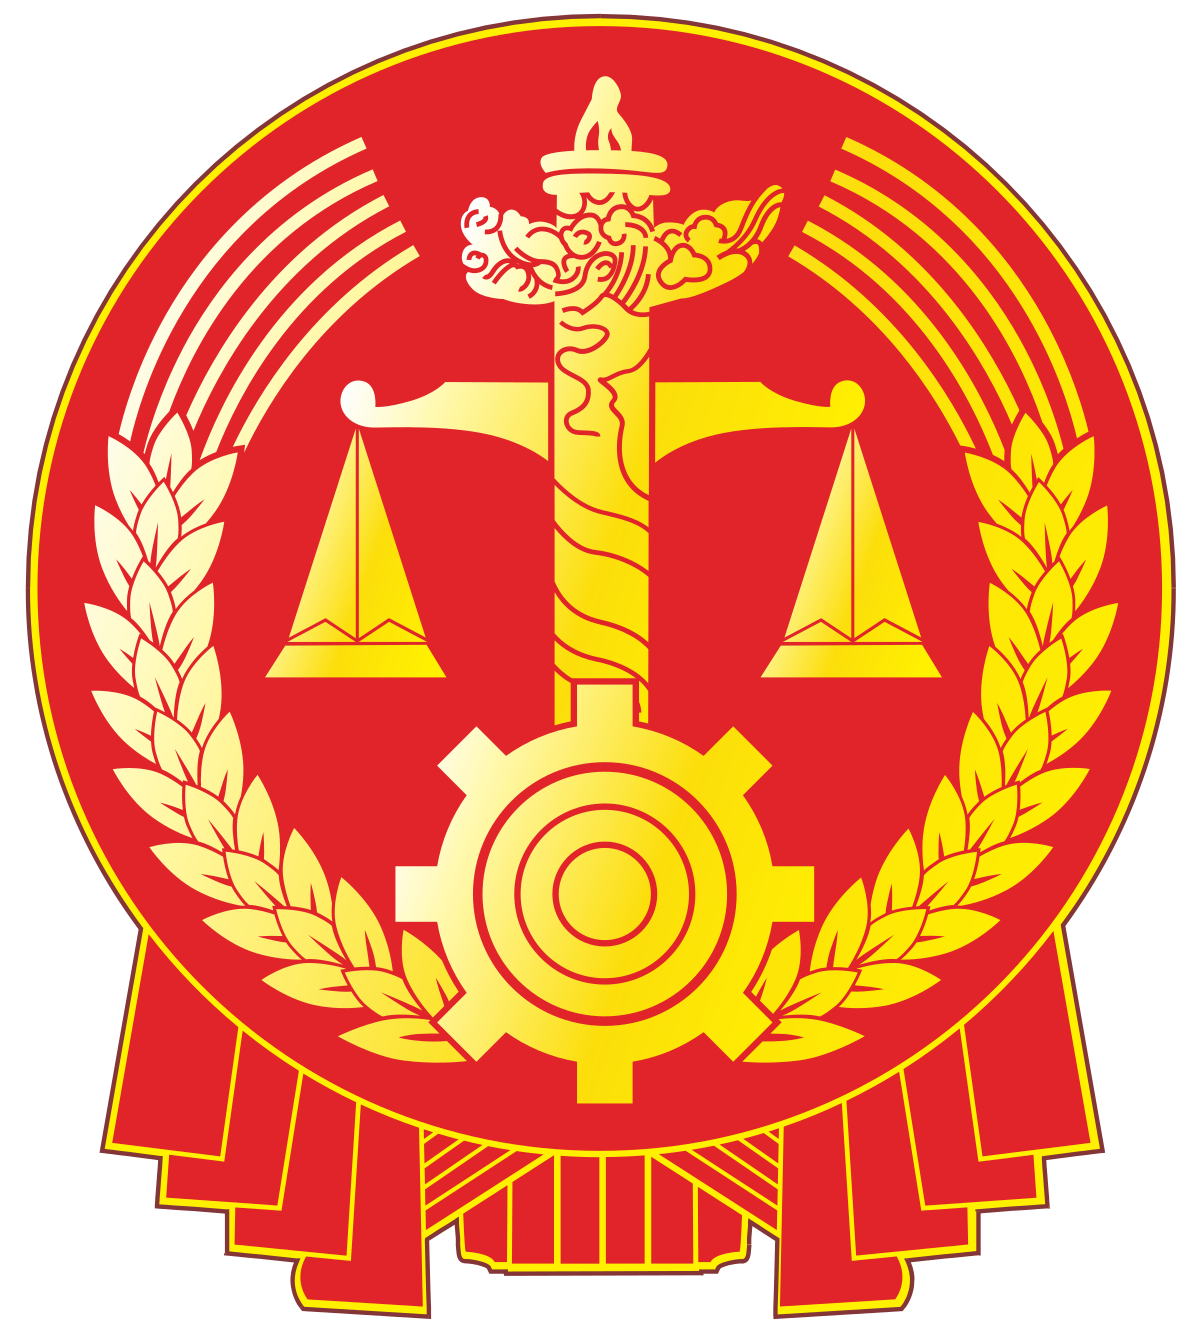 Court clipart civil court. Supreme people s wikipedia